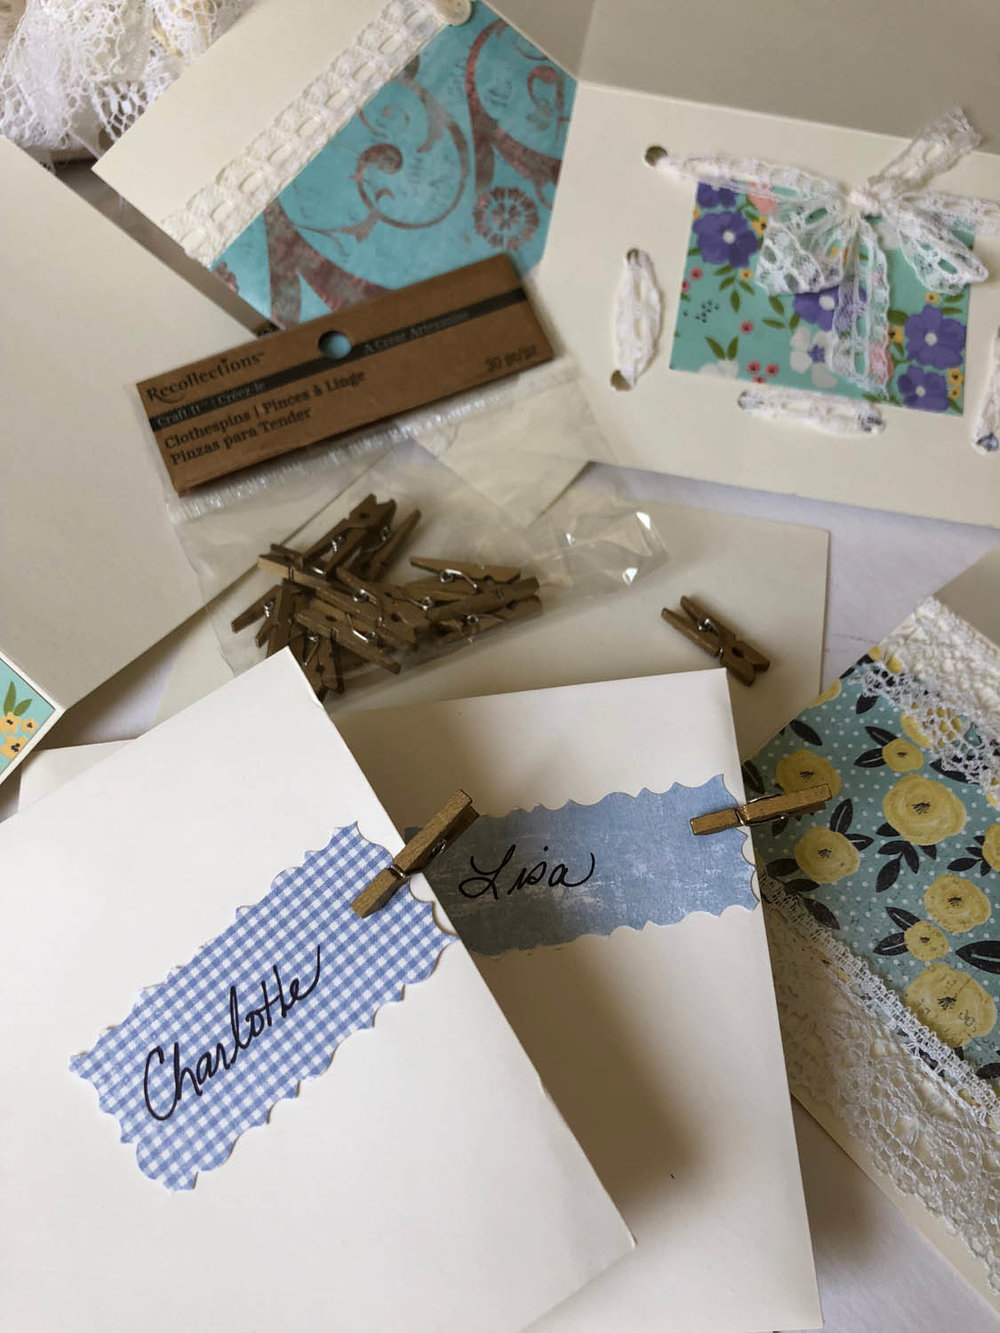 Handmade Paper Craft Gifts You can Make Right Now Diy Handmade Embellished Cards And Paper Crafts Yarn Scissors Silk